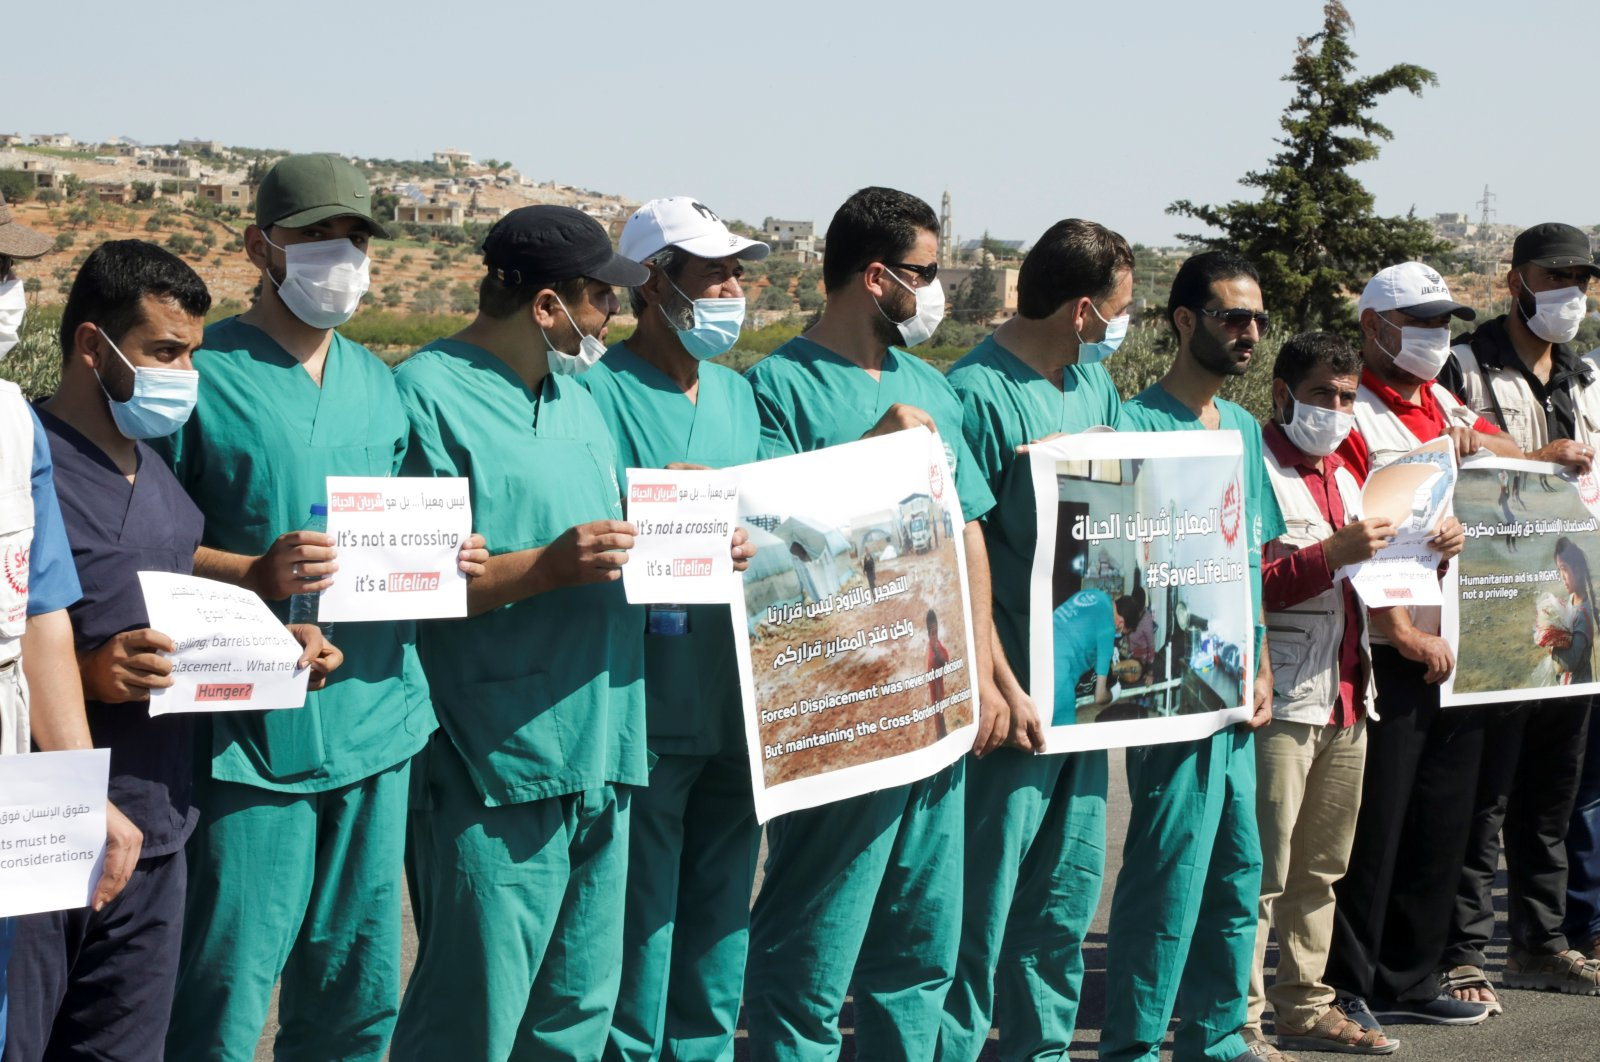 Health care workers hold signs near the Bab al-Hawa crossing during a sit-in against its closure, at the Syrian-Turkish border, in Idlib governorate, Syria, July 2, 2021. (Reuters Photo)